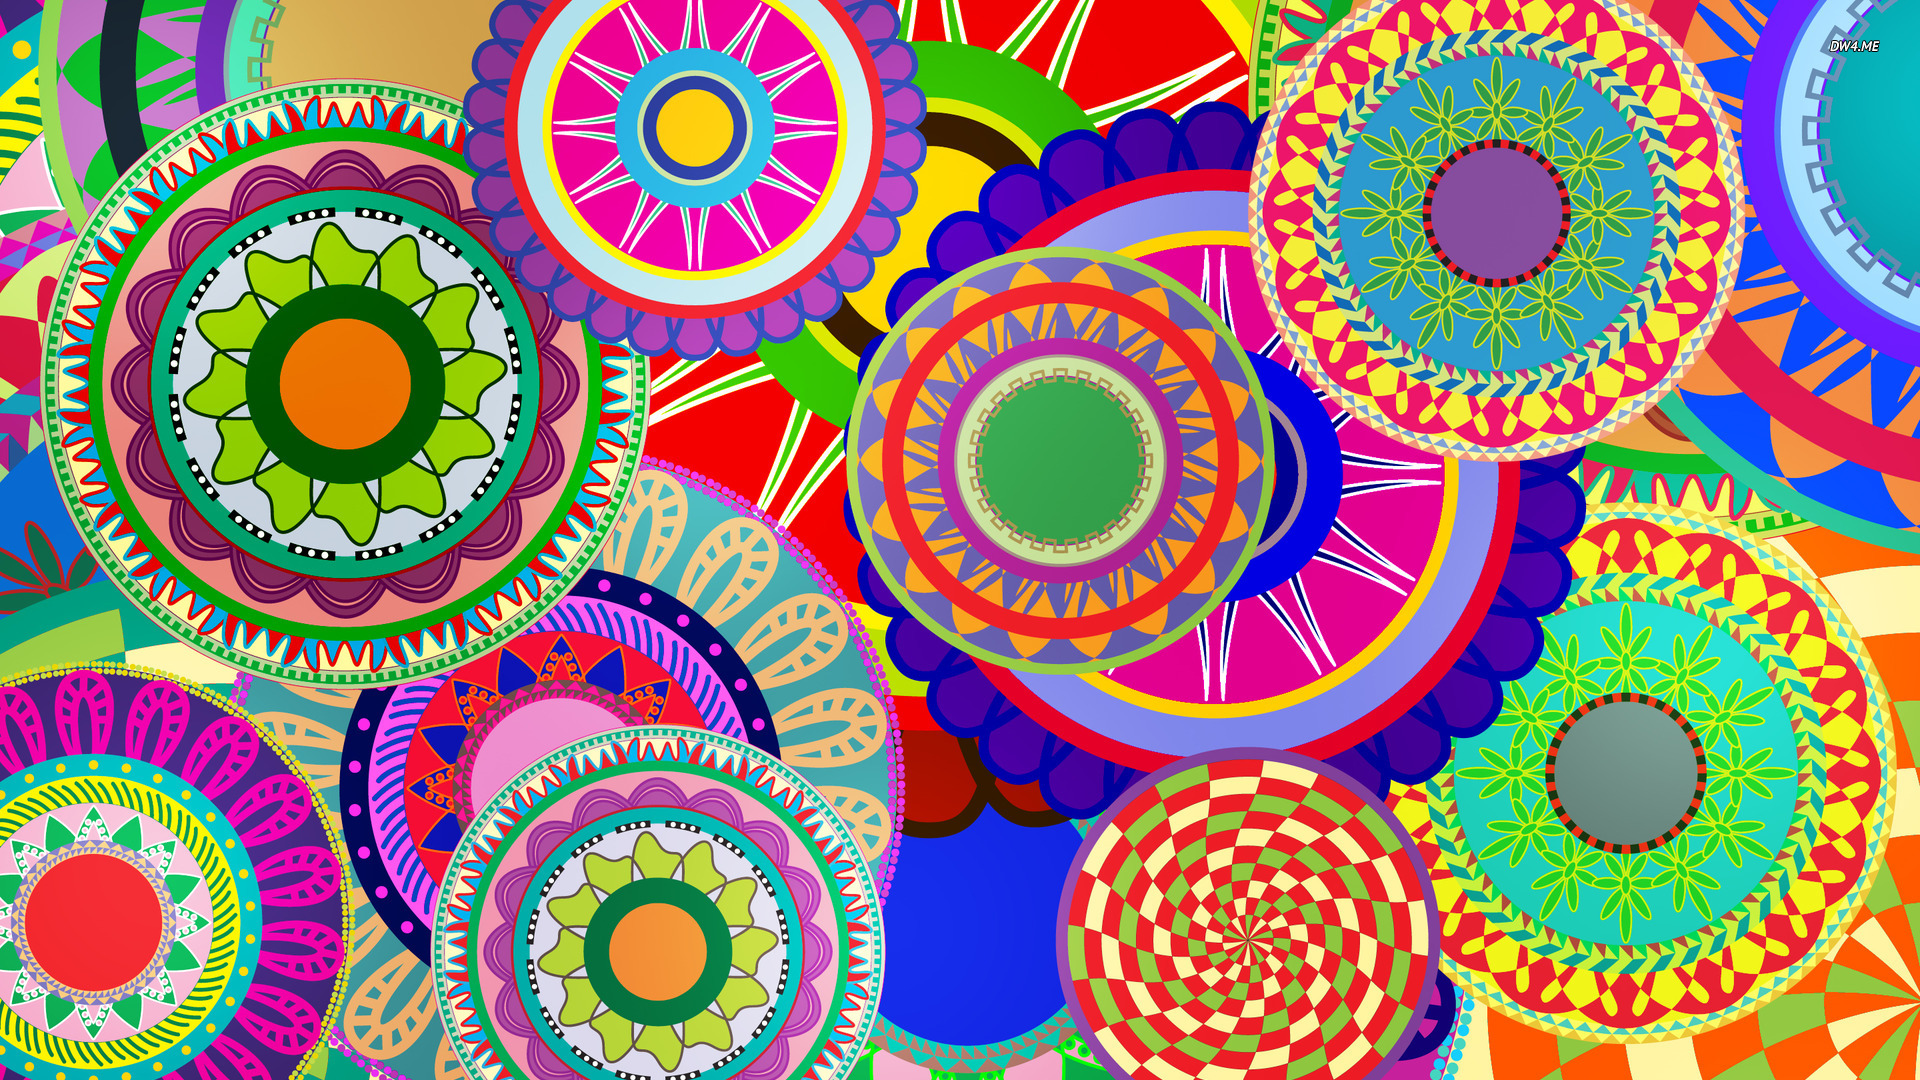 17 Colorful Flowers Vector Wallpaper Designs Images